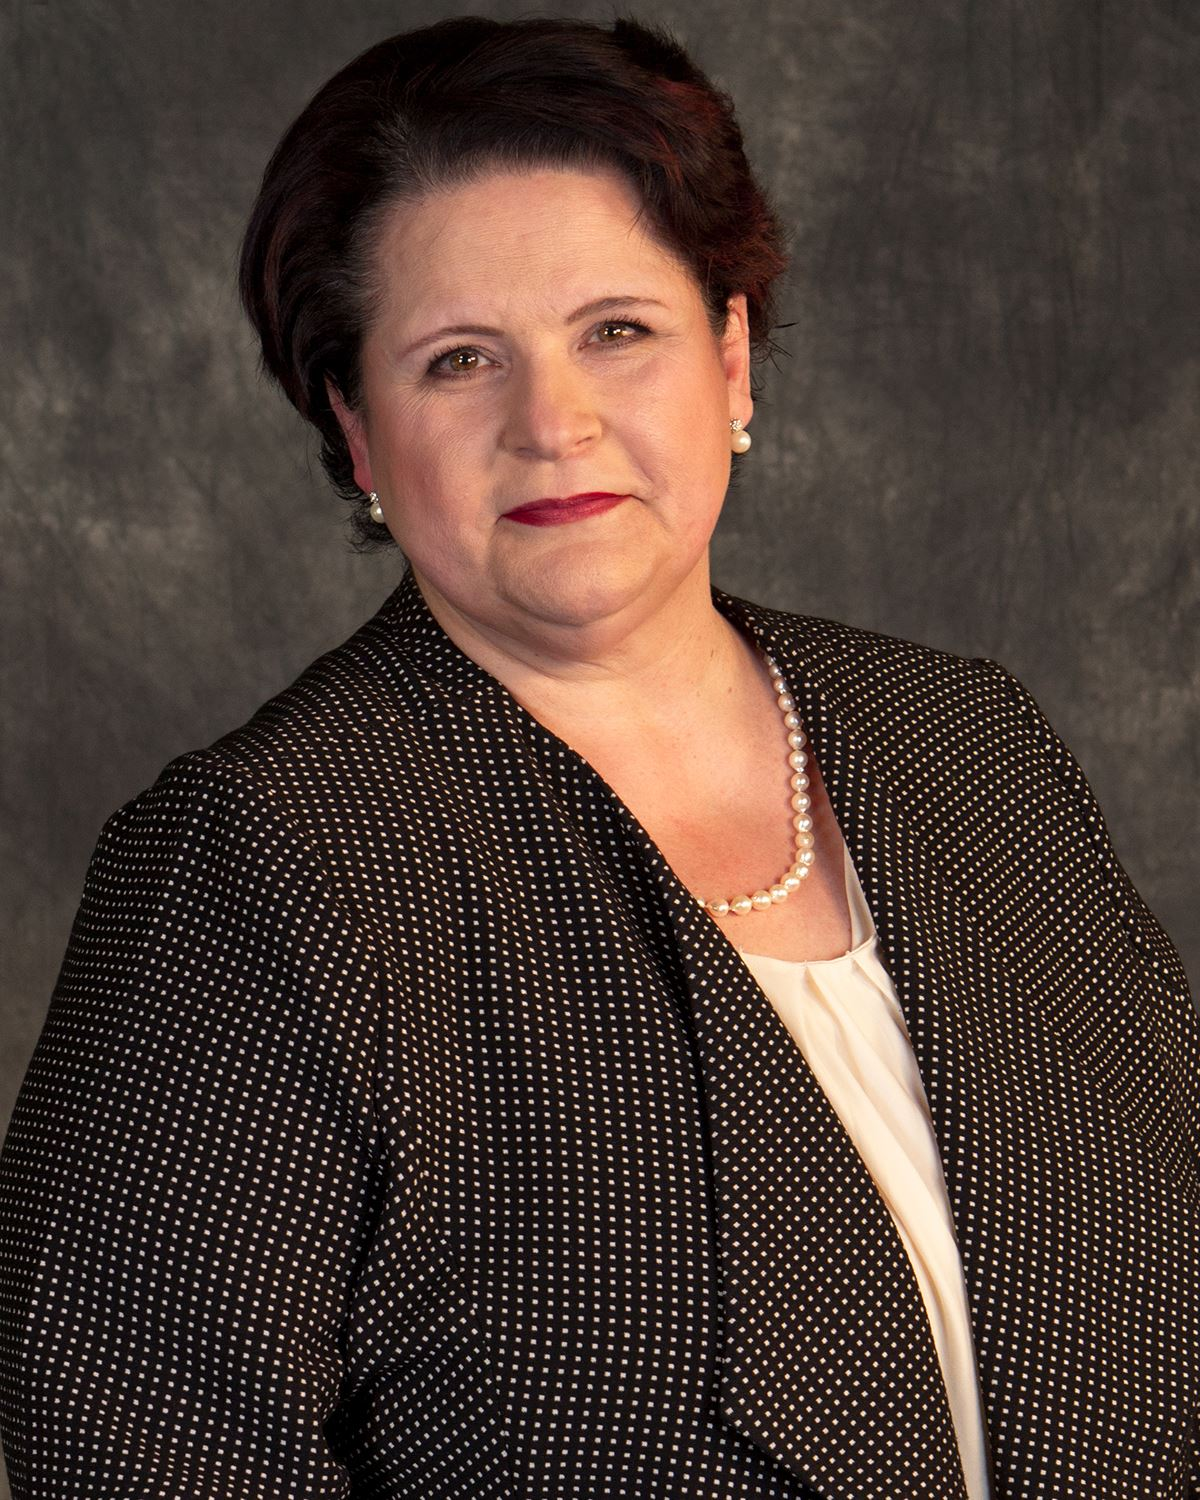 Beverly Abell - Downtown Development Manager - Mesquite TX